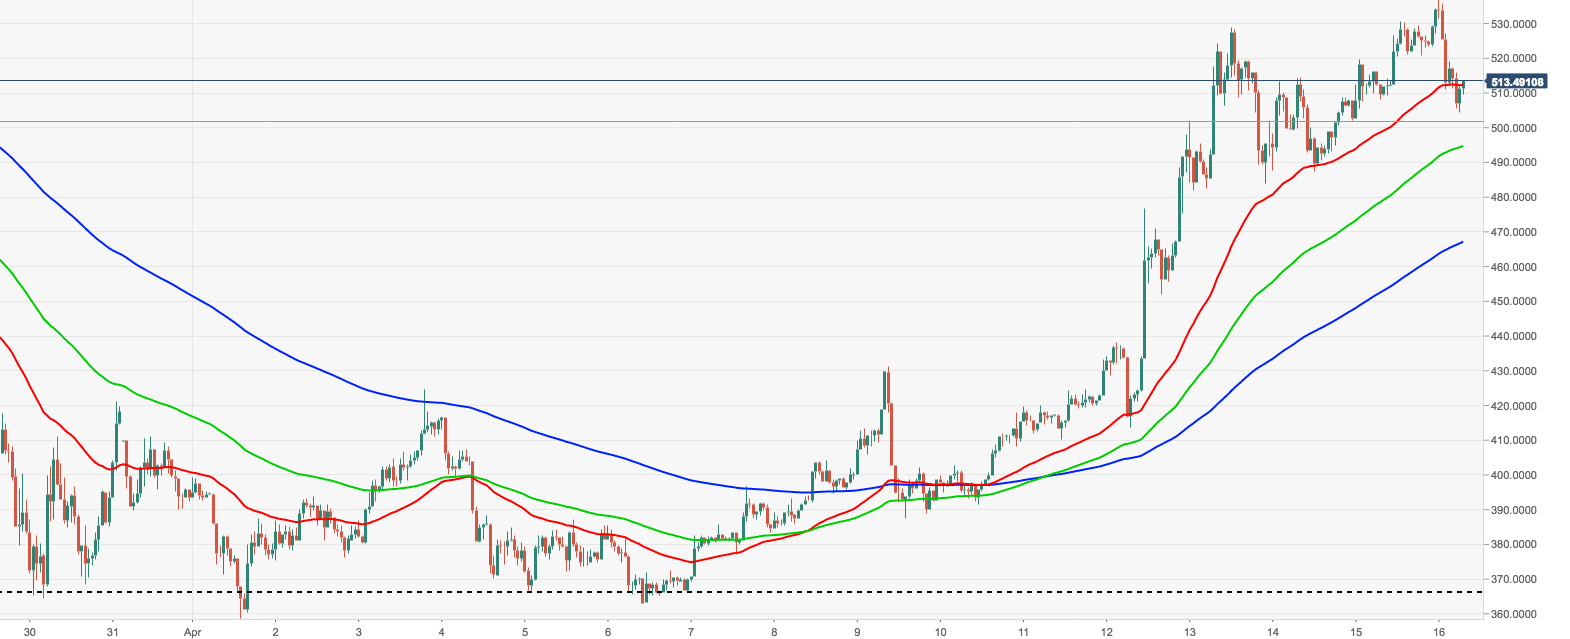 ETH/USD, the hourly chart